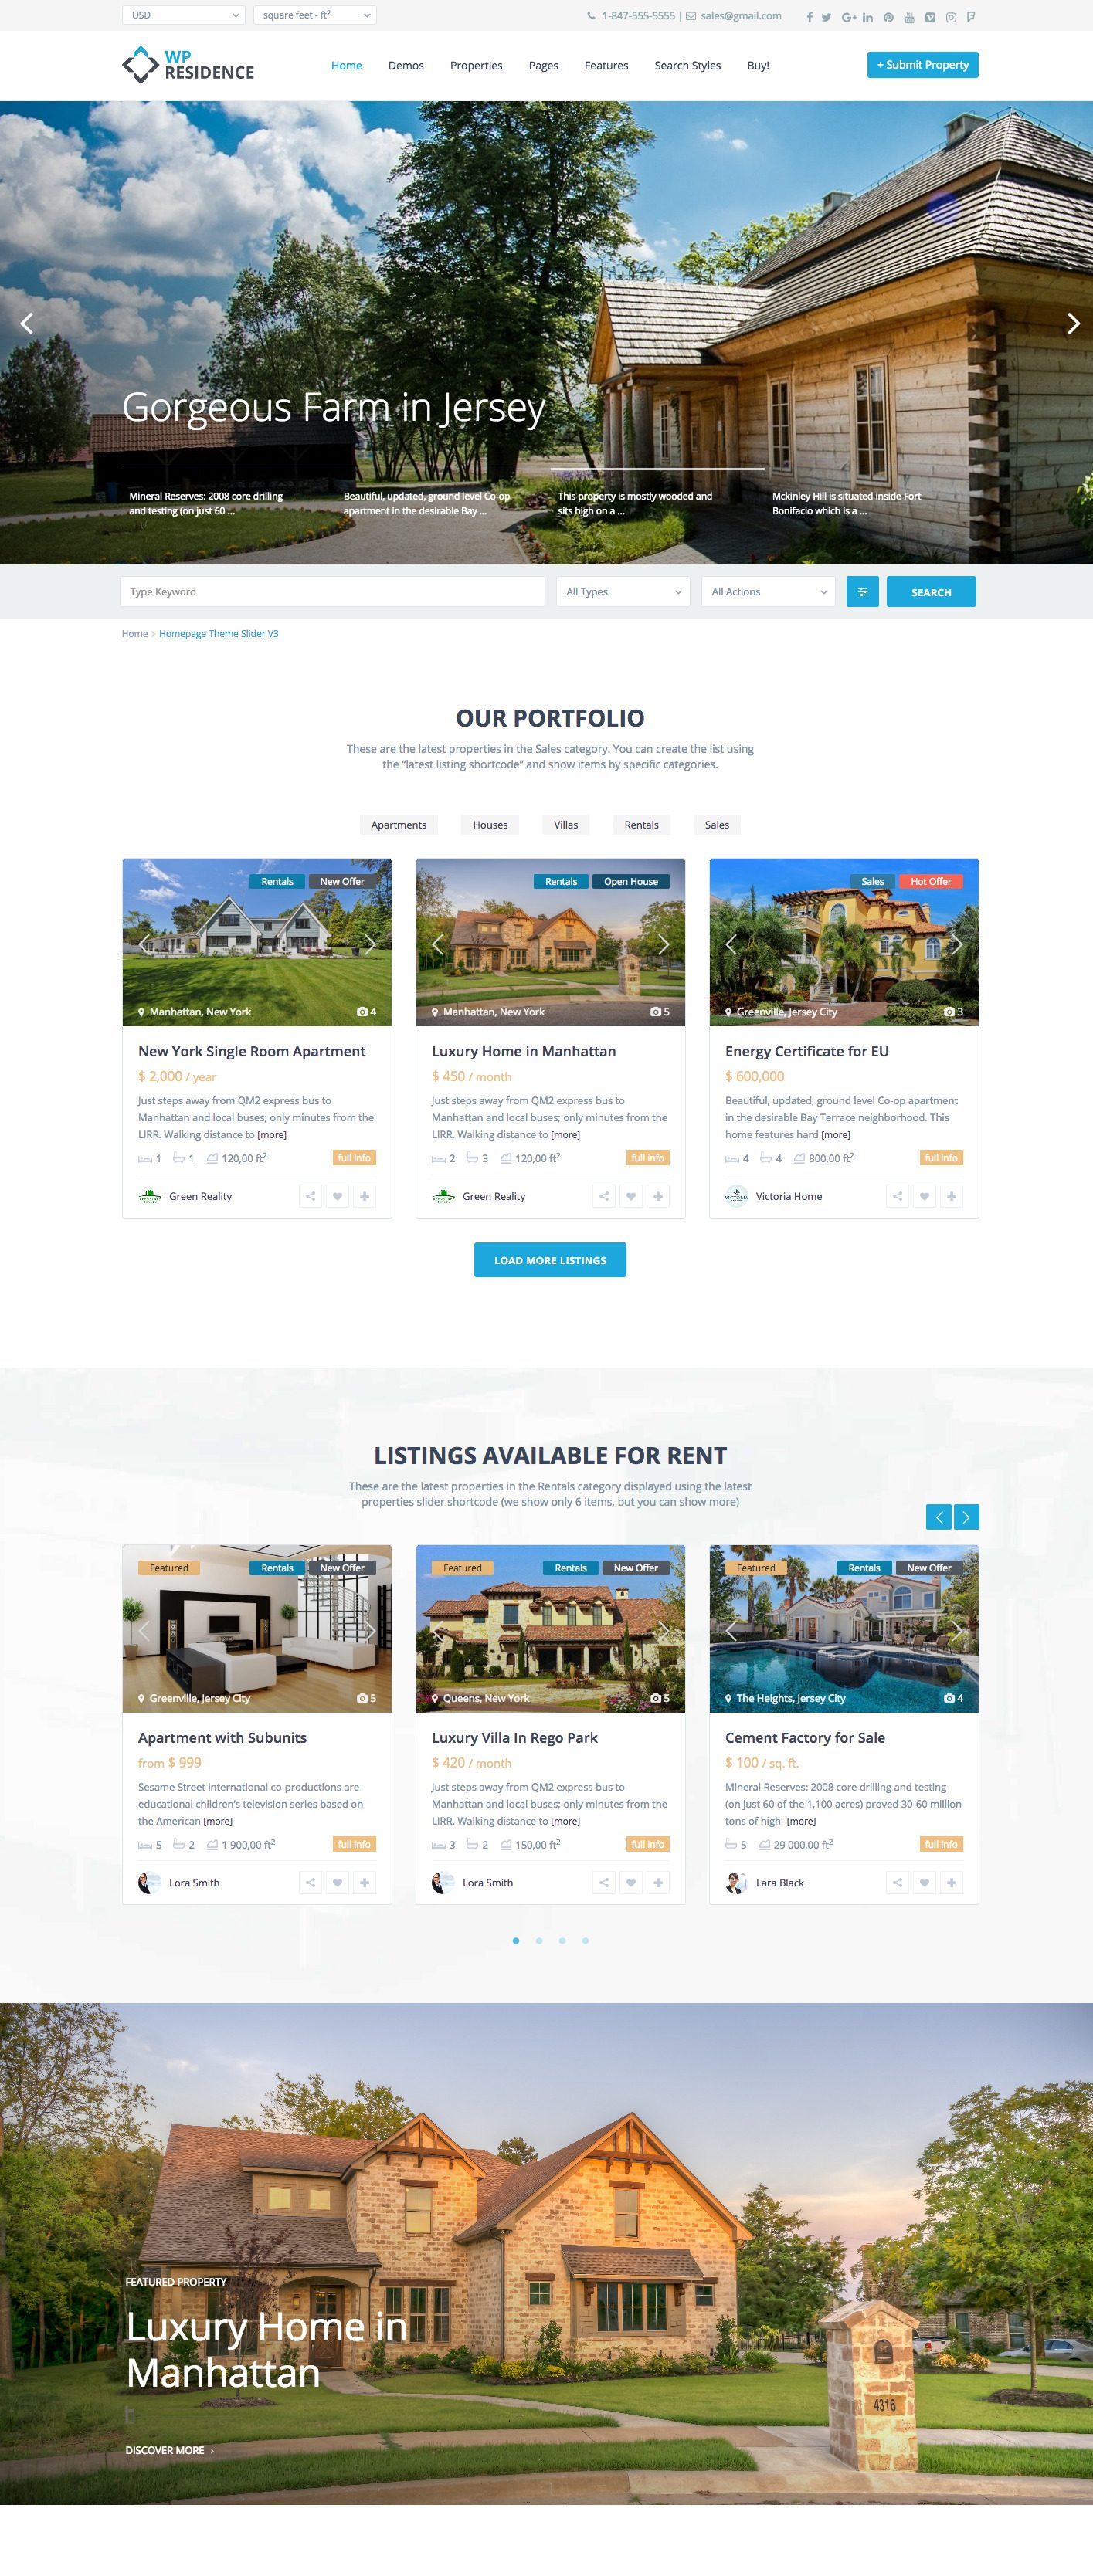 HOW TO MAKE YOUR REAL ESTATE HOME PAGE INVITING